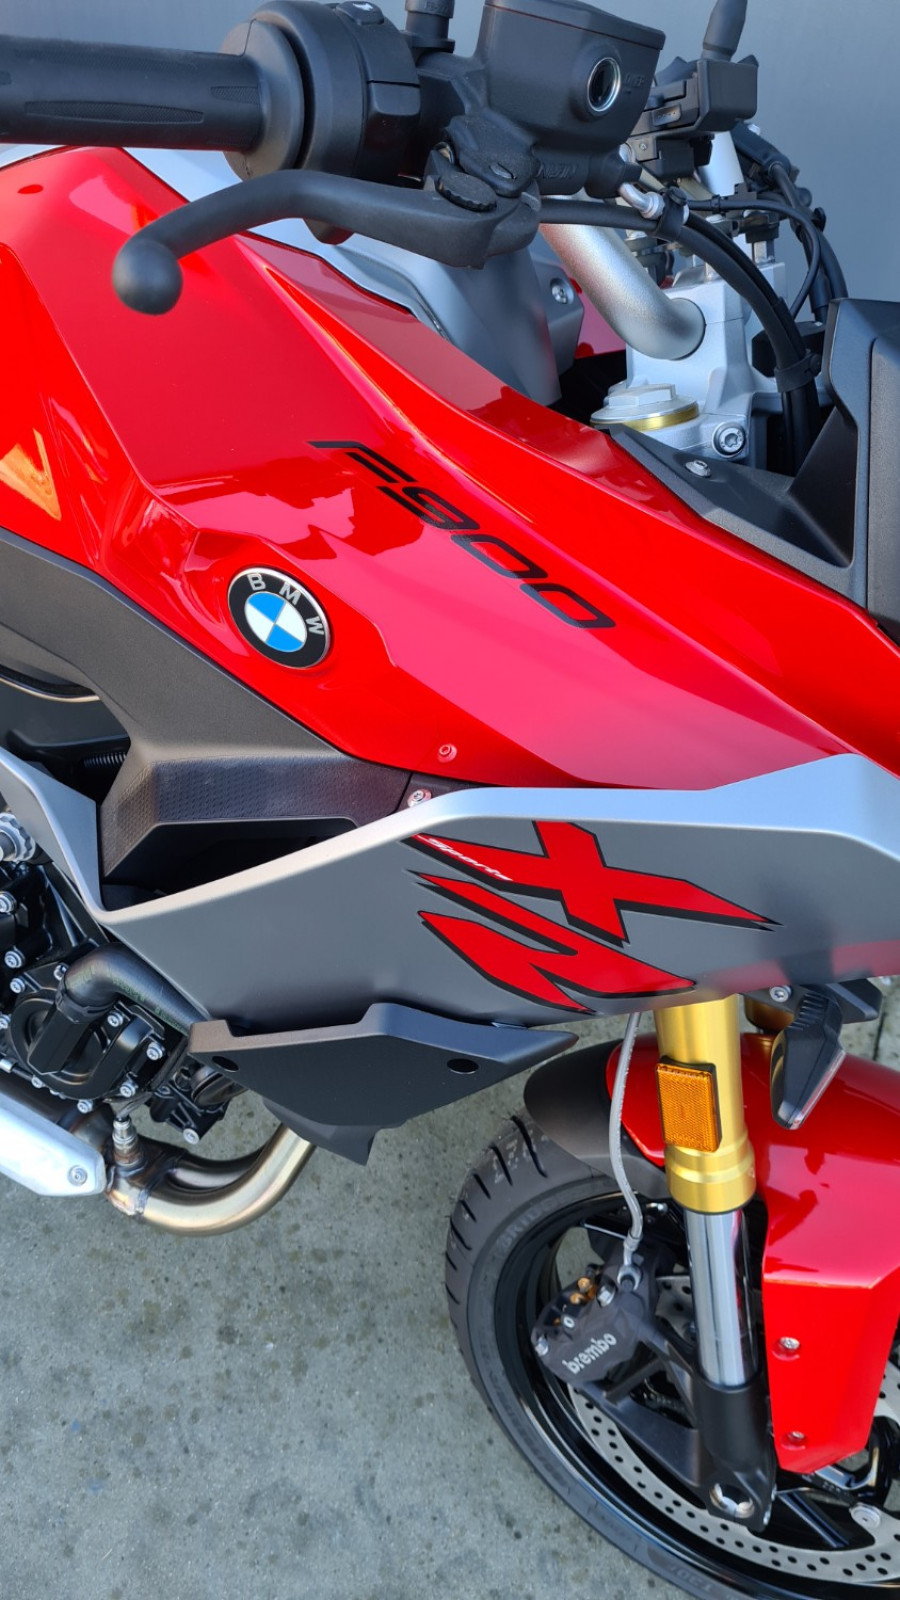 2021 BMW F 900 XR Tour F F 900 XR Tour Motorcycle Image 2